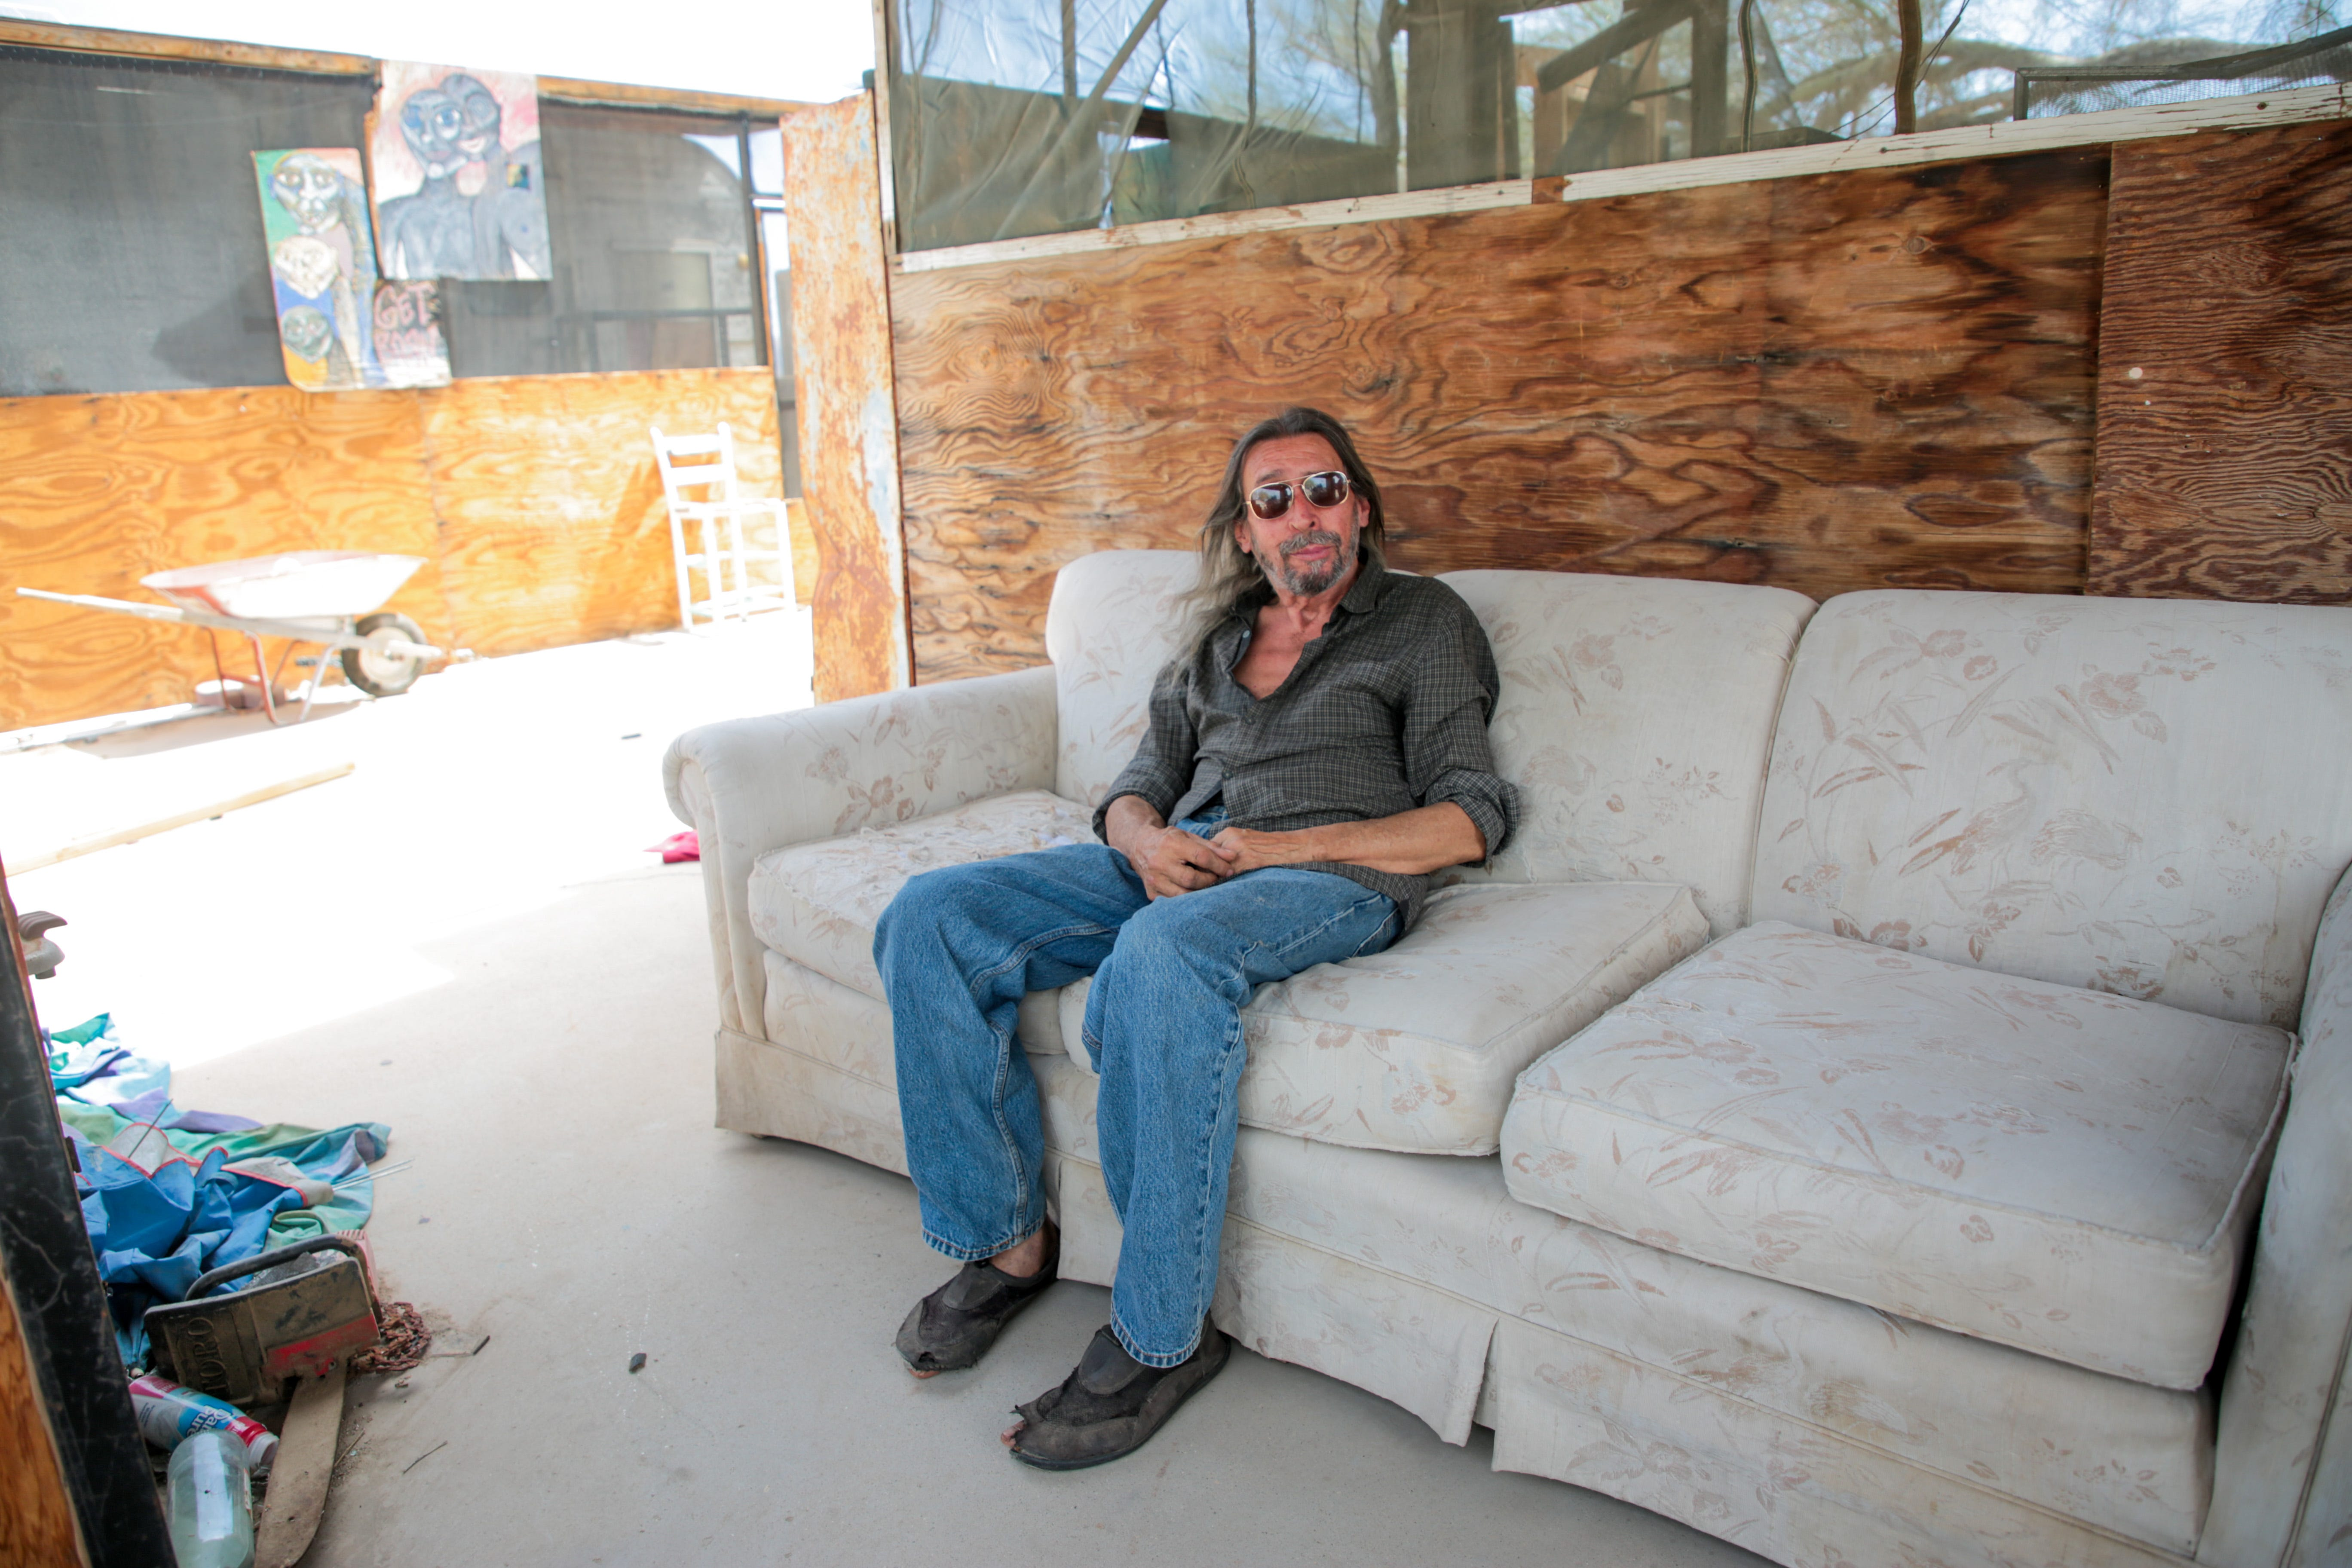 Carlos Gonzales sits on a couch near The Range in Slab City, Calif., on Monday, April 5, 2021. Gonzales received both doses of his COVID-19 vaccine.